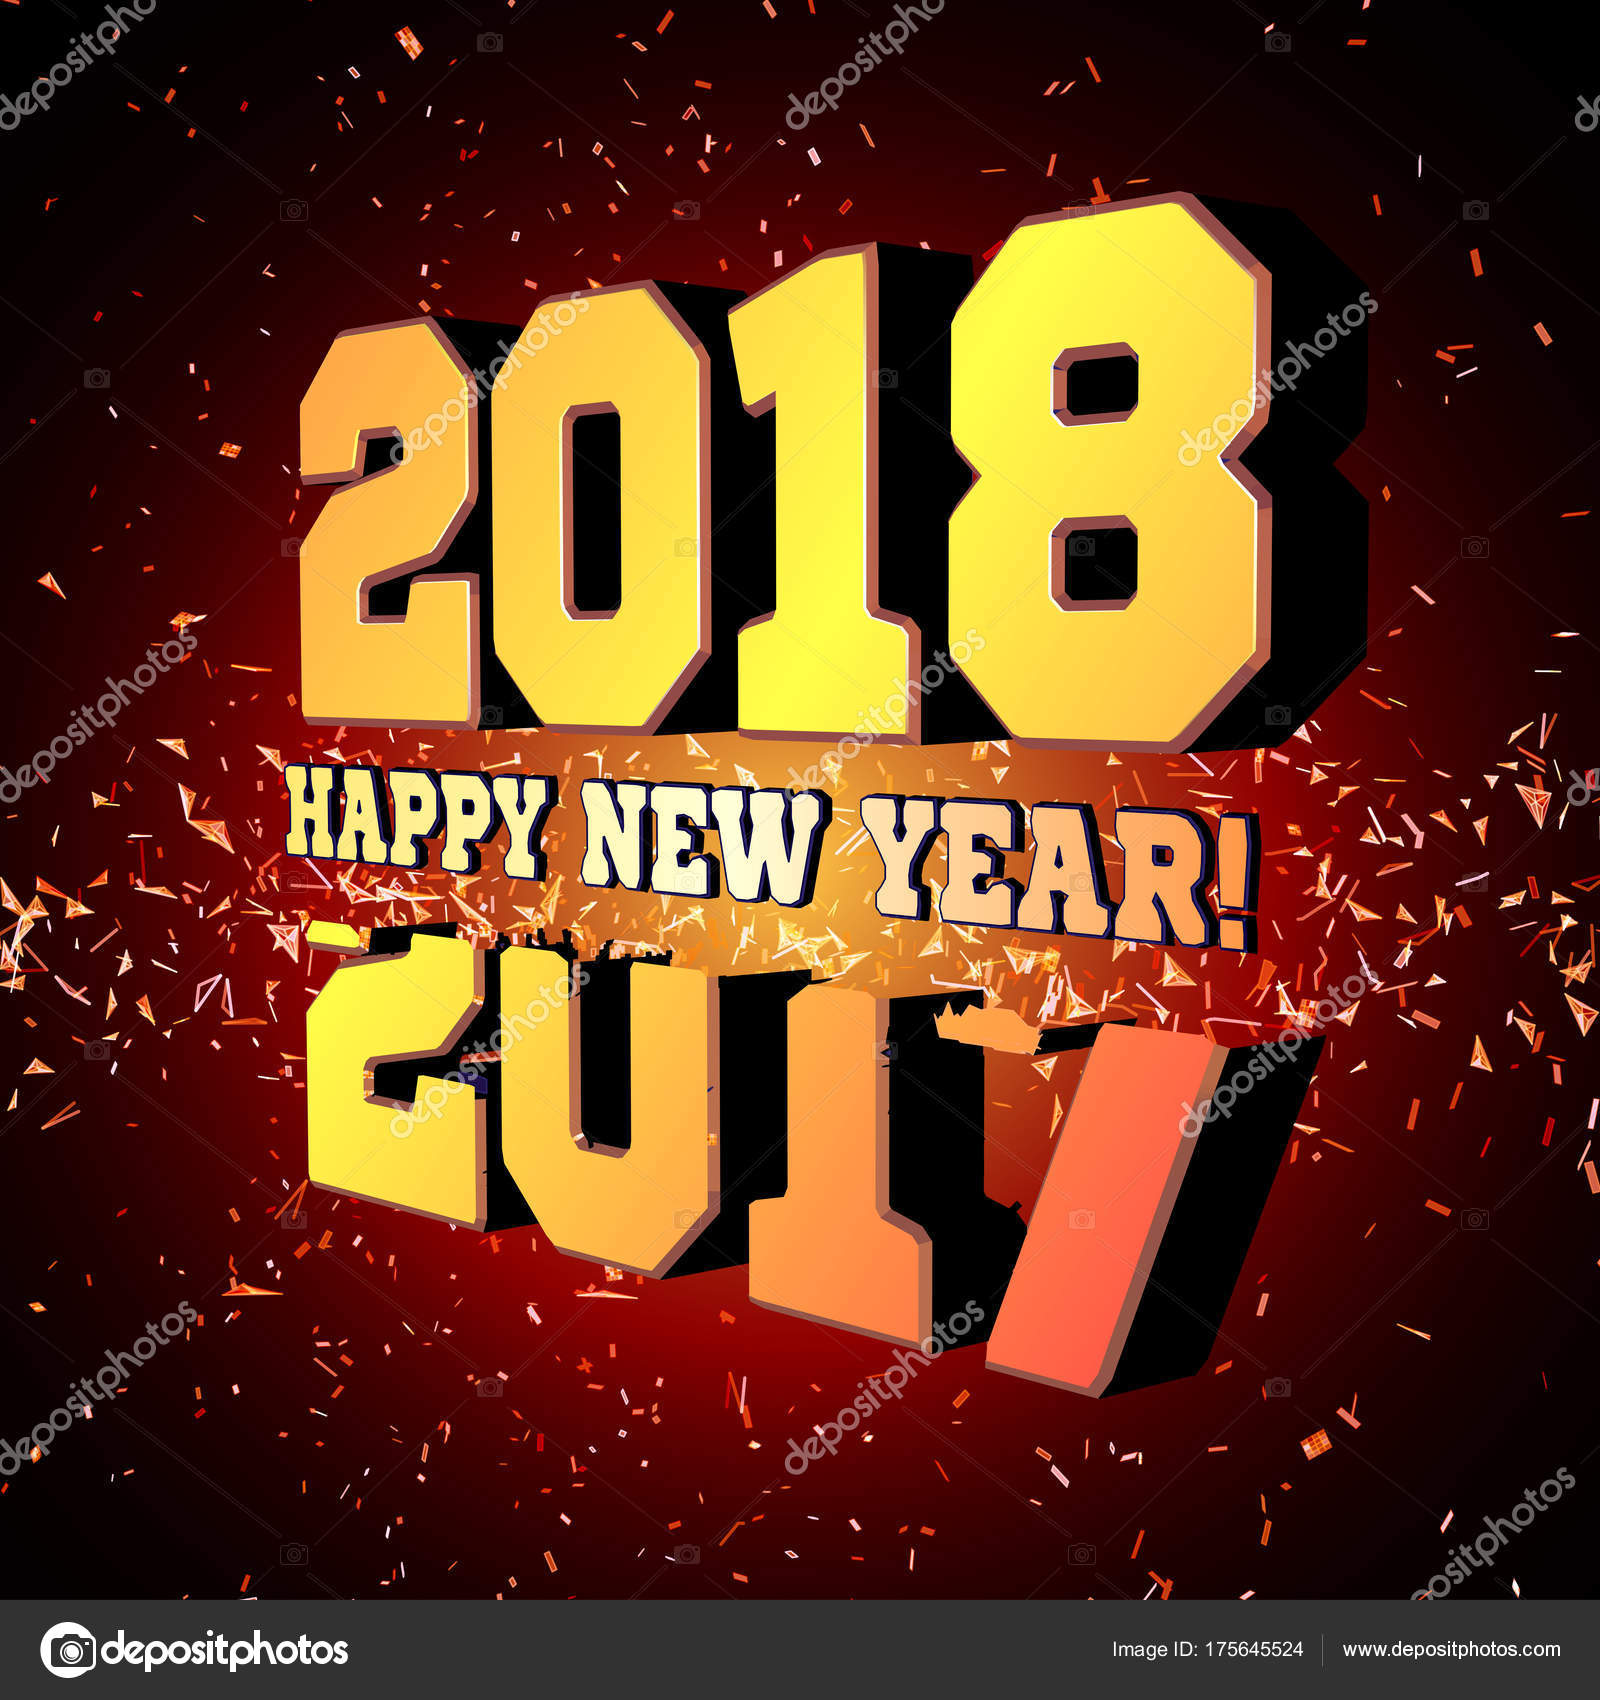 Official congratulations on the New Year 2018 81